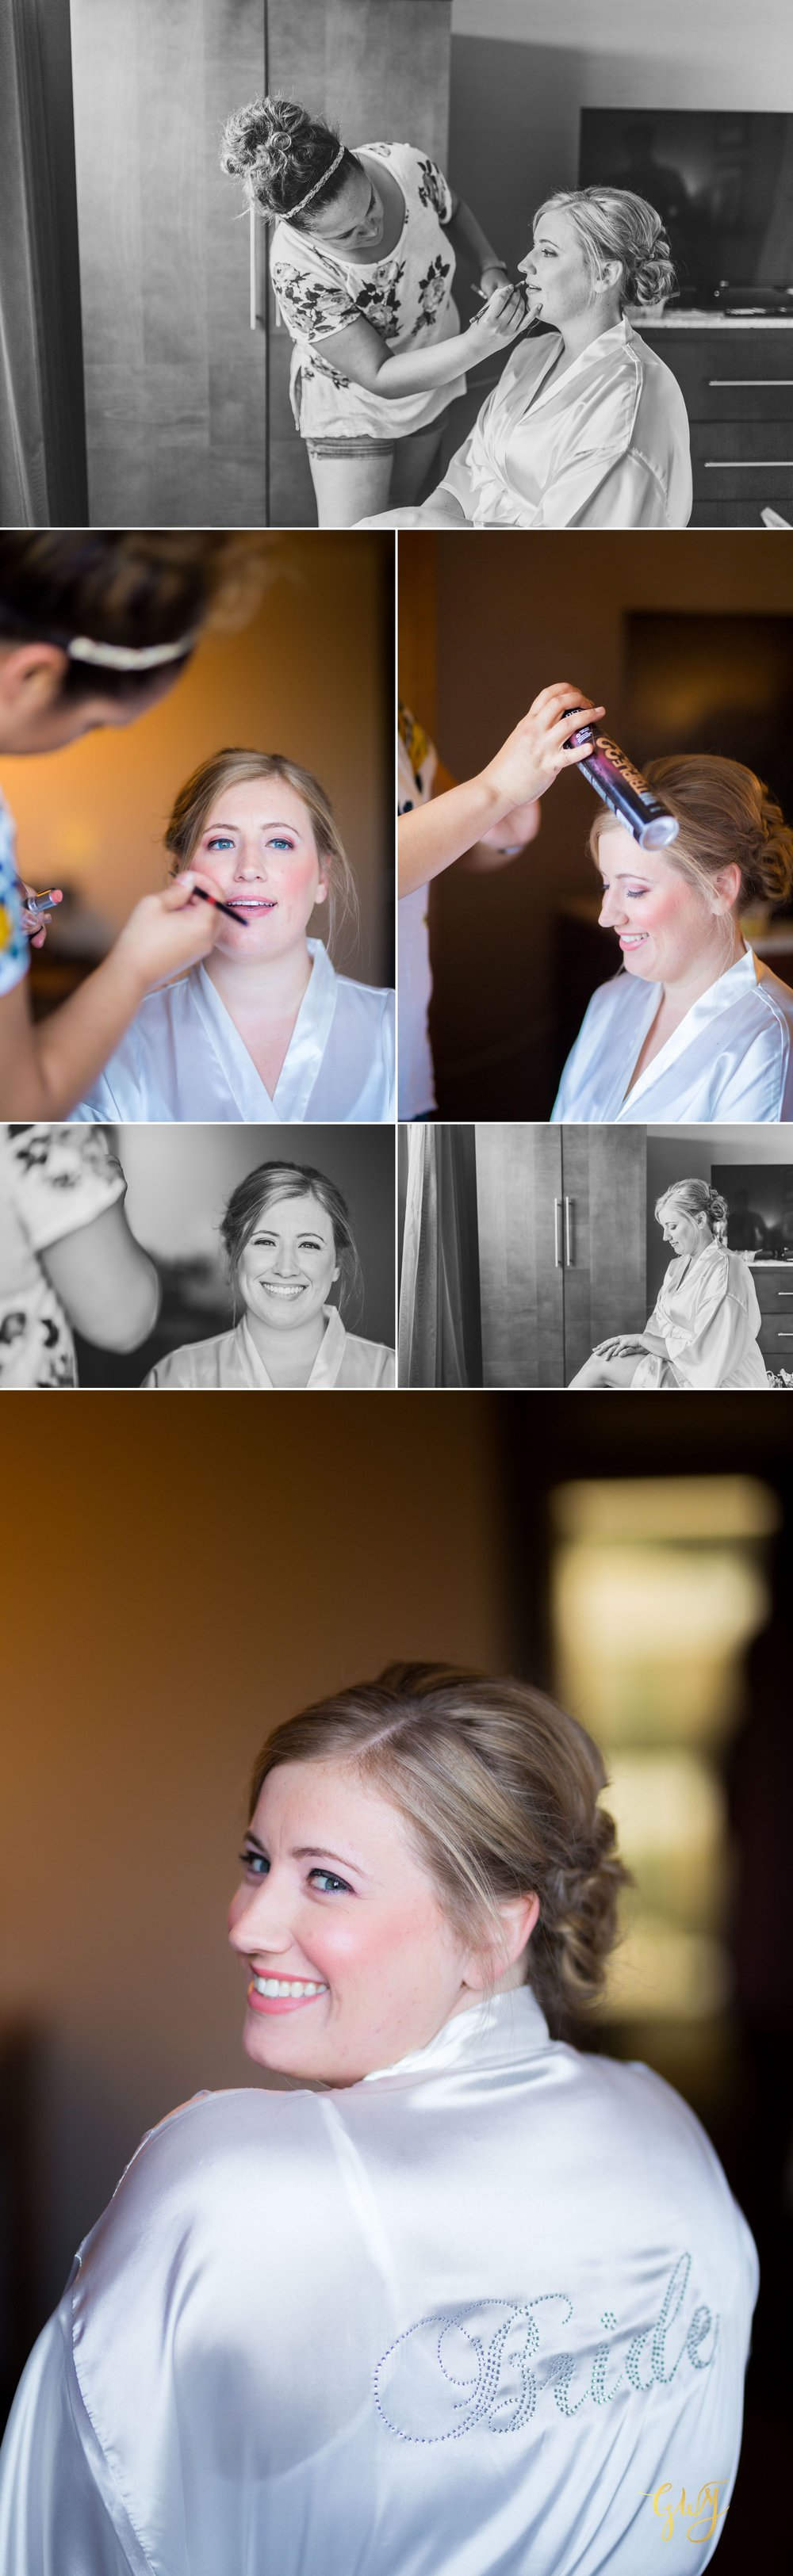 Javier + Kari Avenue of the Arts First Look Vintage Rose Wedding Ceremony Reception by Glass Woods Media 1.jpg